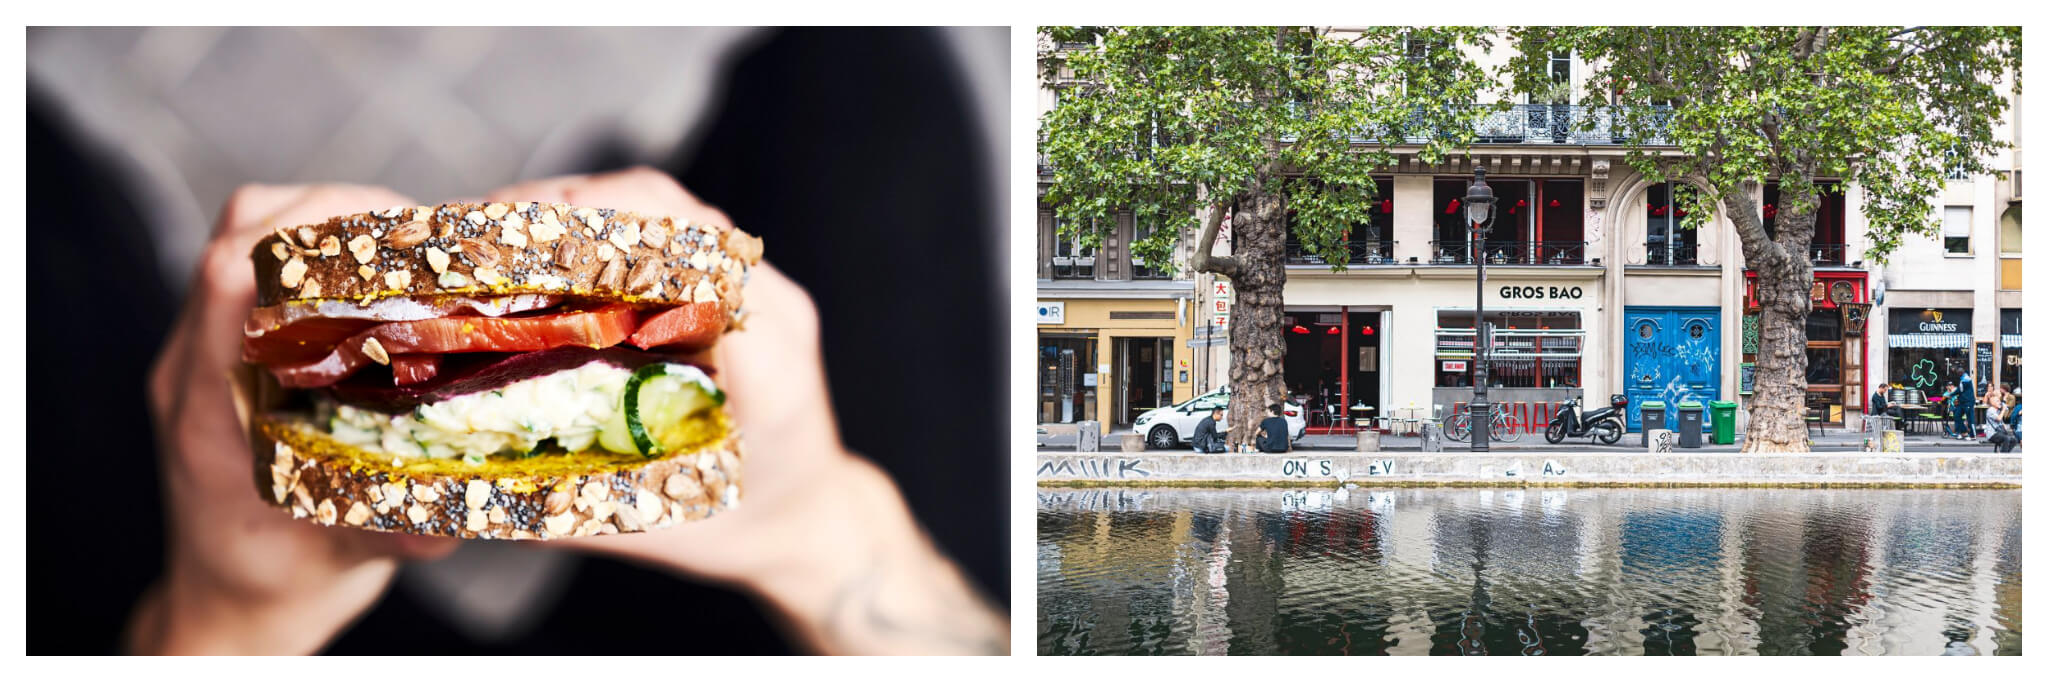 Left: A person holds a sandwich stuffed with vegetables from Back in Black, Right: The exterior of Grand Bao, which sits just next to the Canal St. Martin.